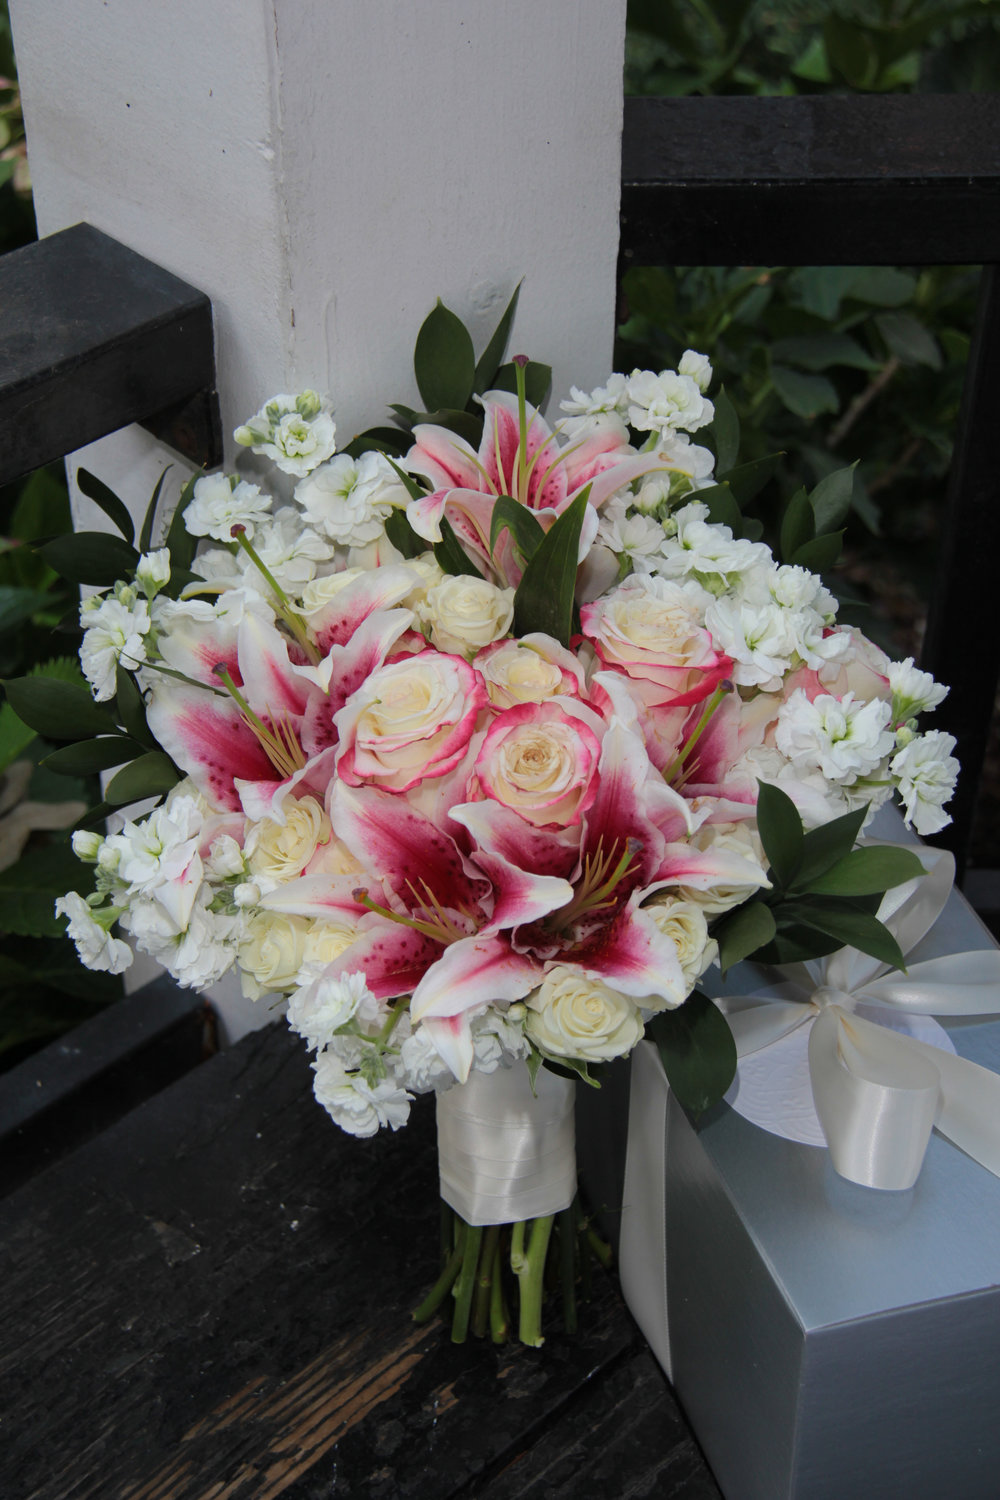 Savannah wedding, wedding packages, wedding flowers, destination wedding, stargazer lily, brides bouquet